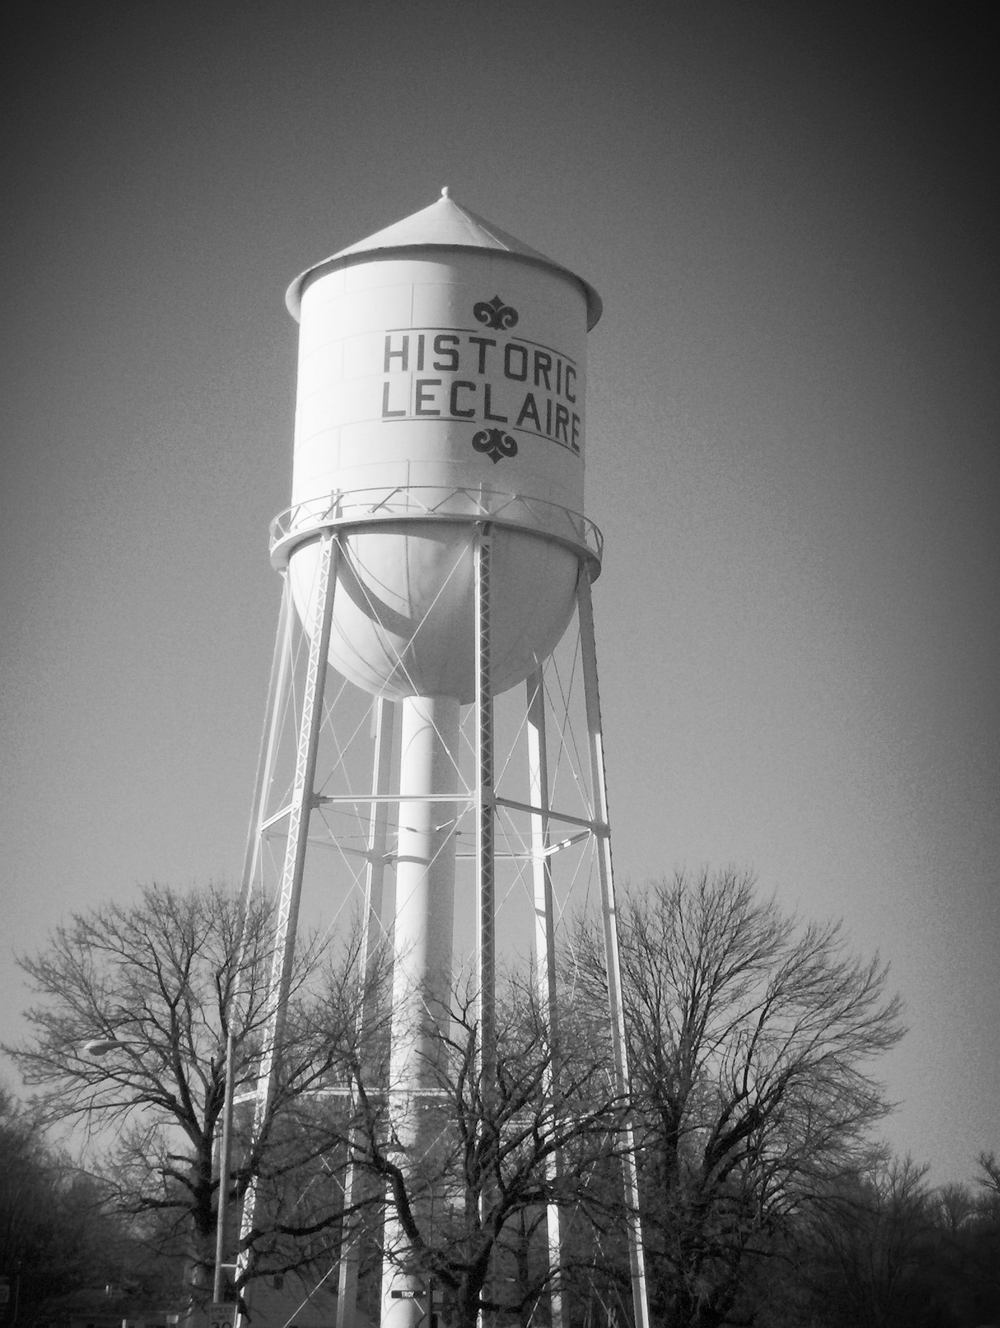 Leclaire_watertower-01.JPG